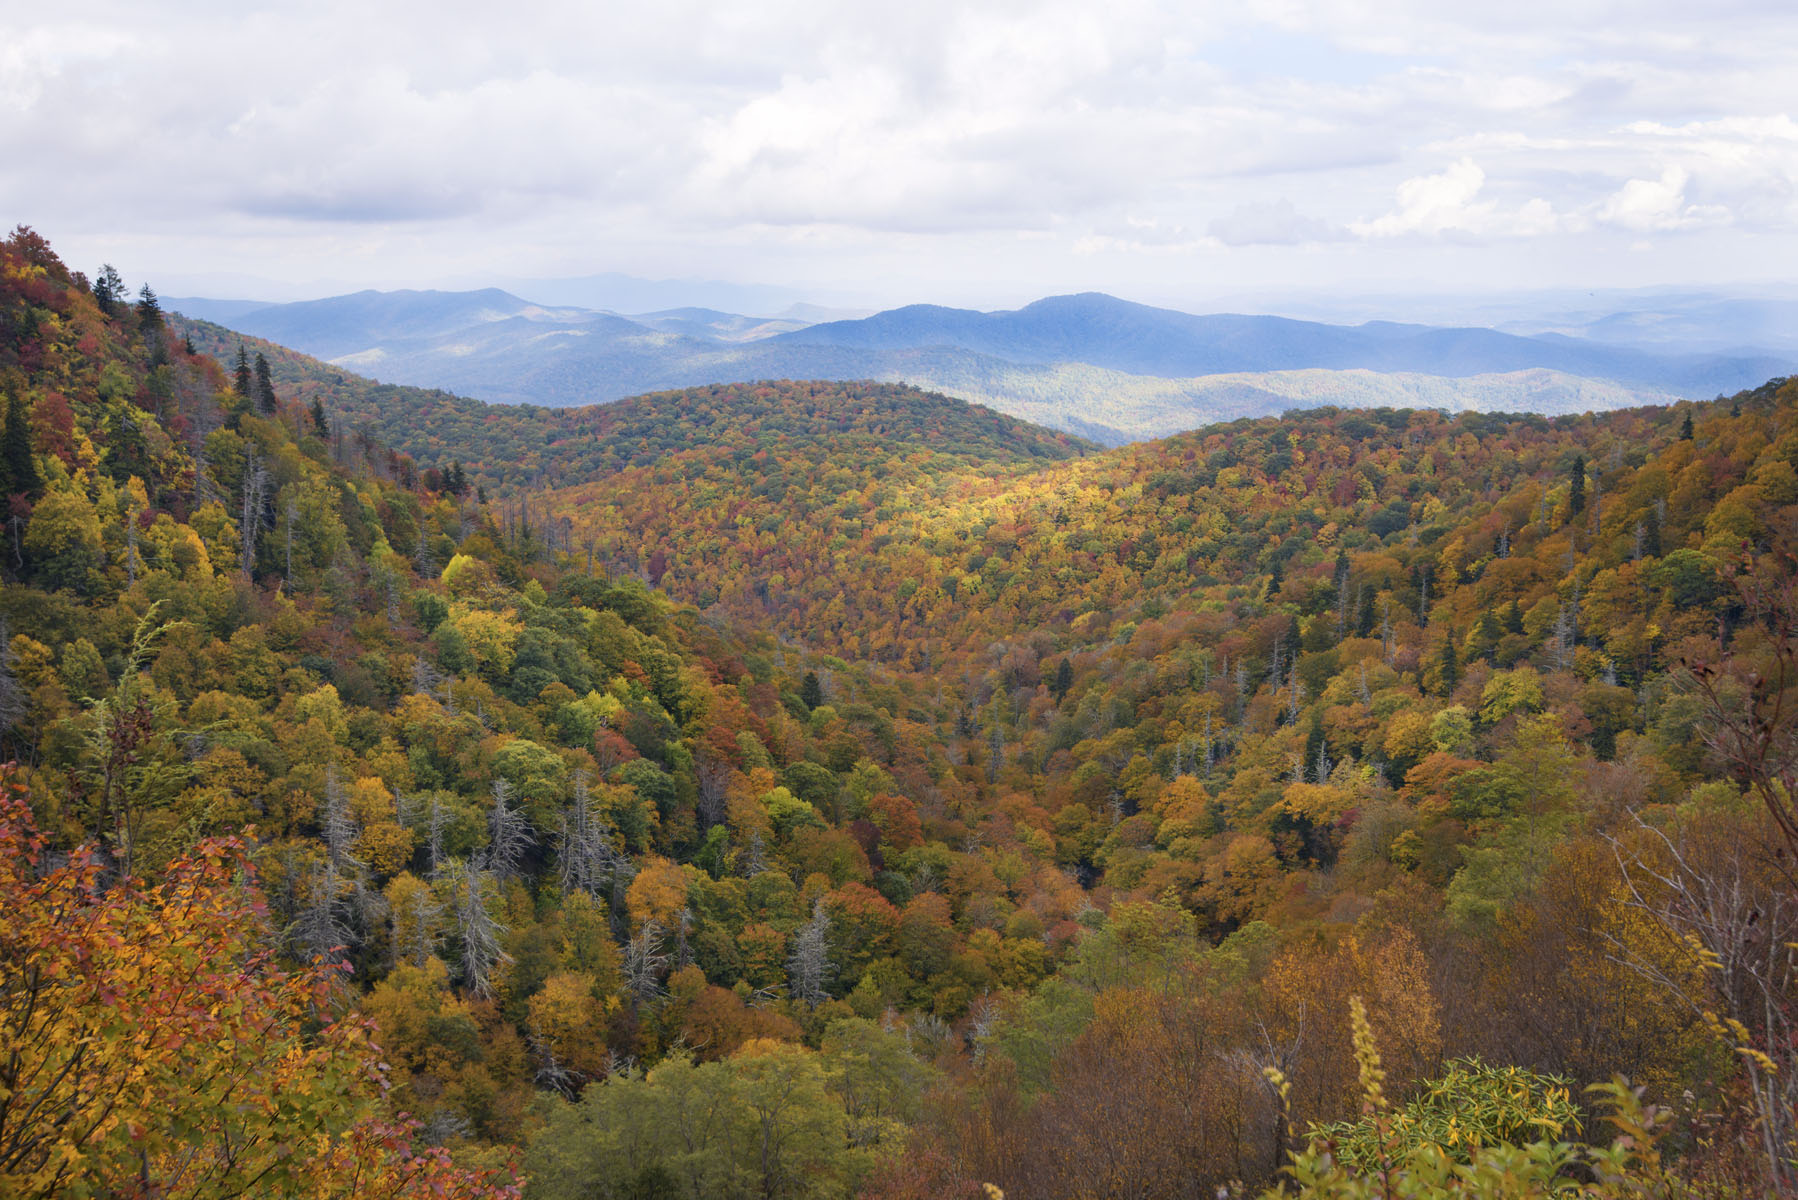 Colorful Fall Foliage in Smoky Mountains on Asheville Blue Ridge Parkway